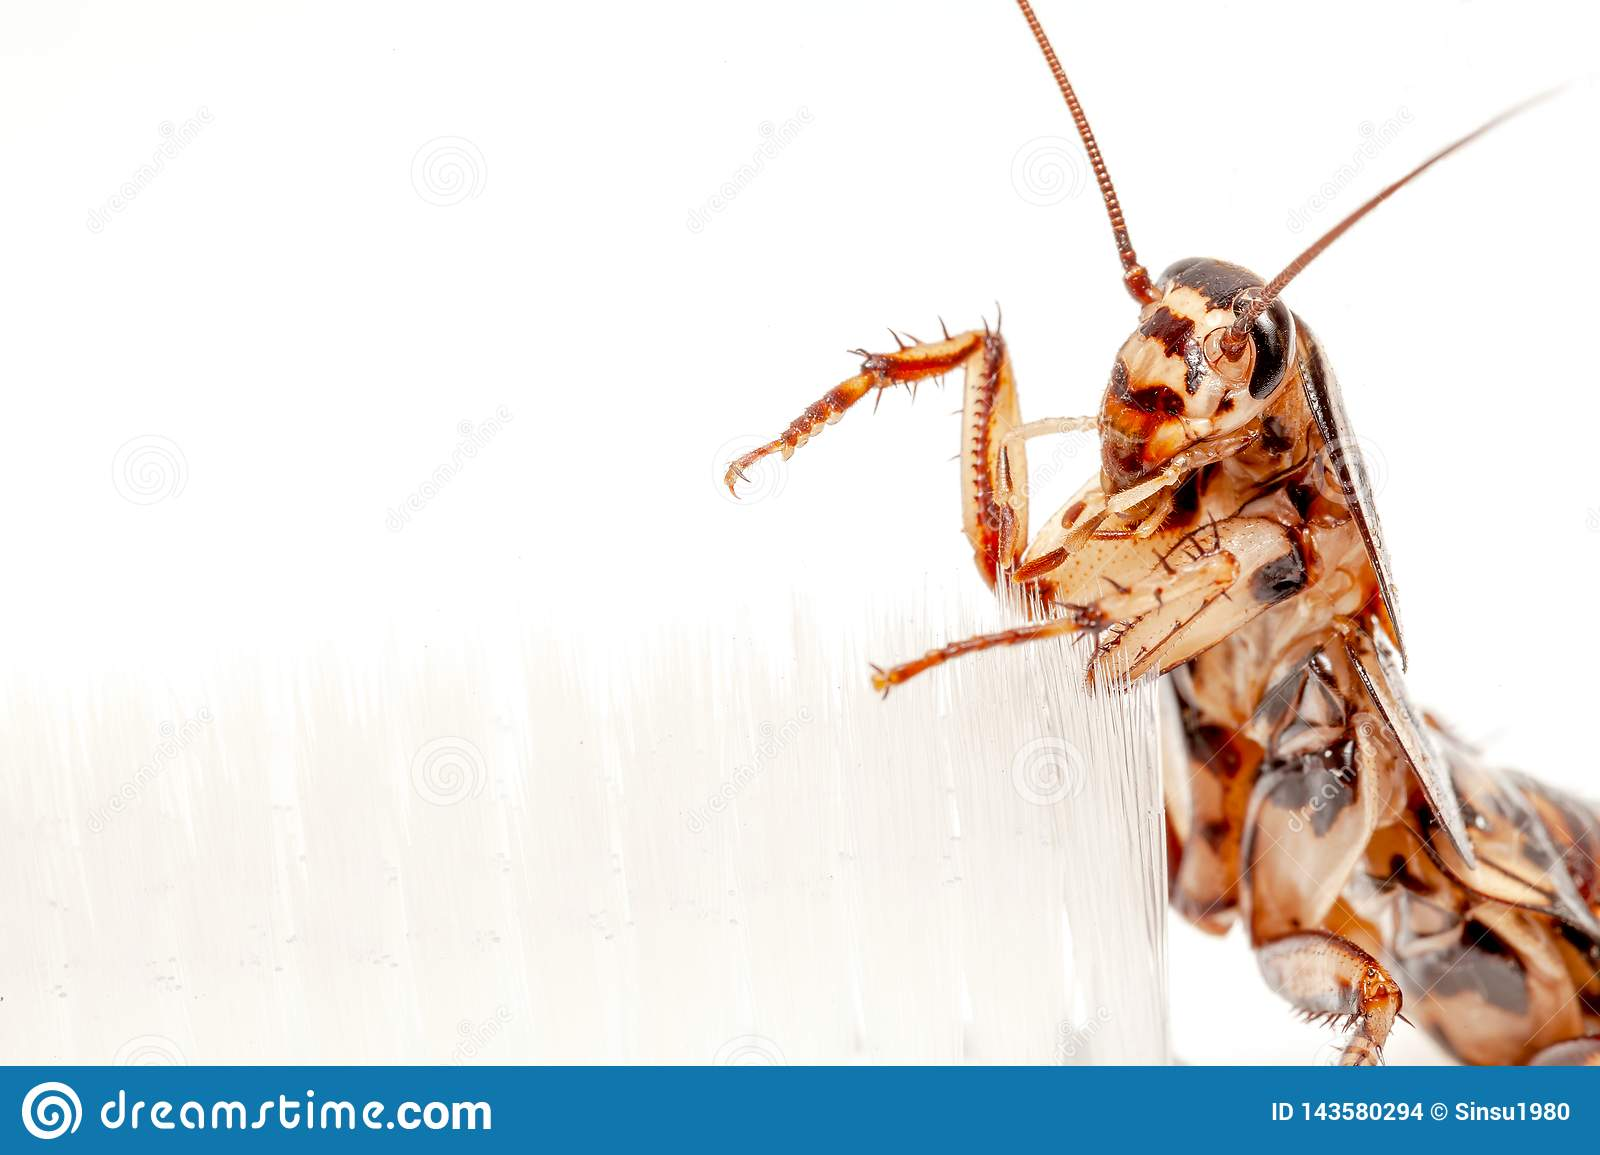 Cockroaches are in the toothbrush on white background